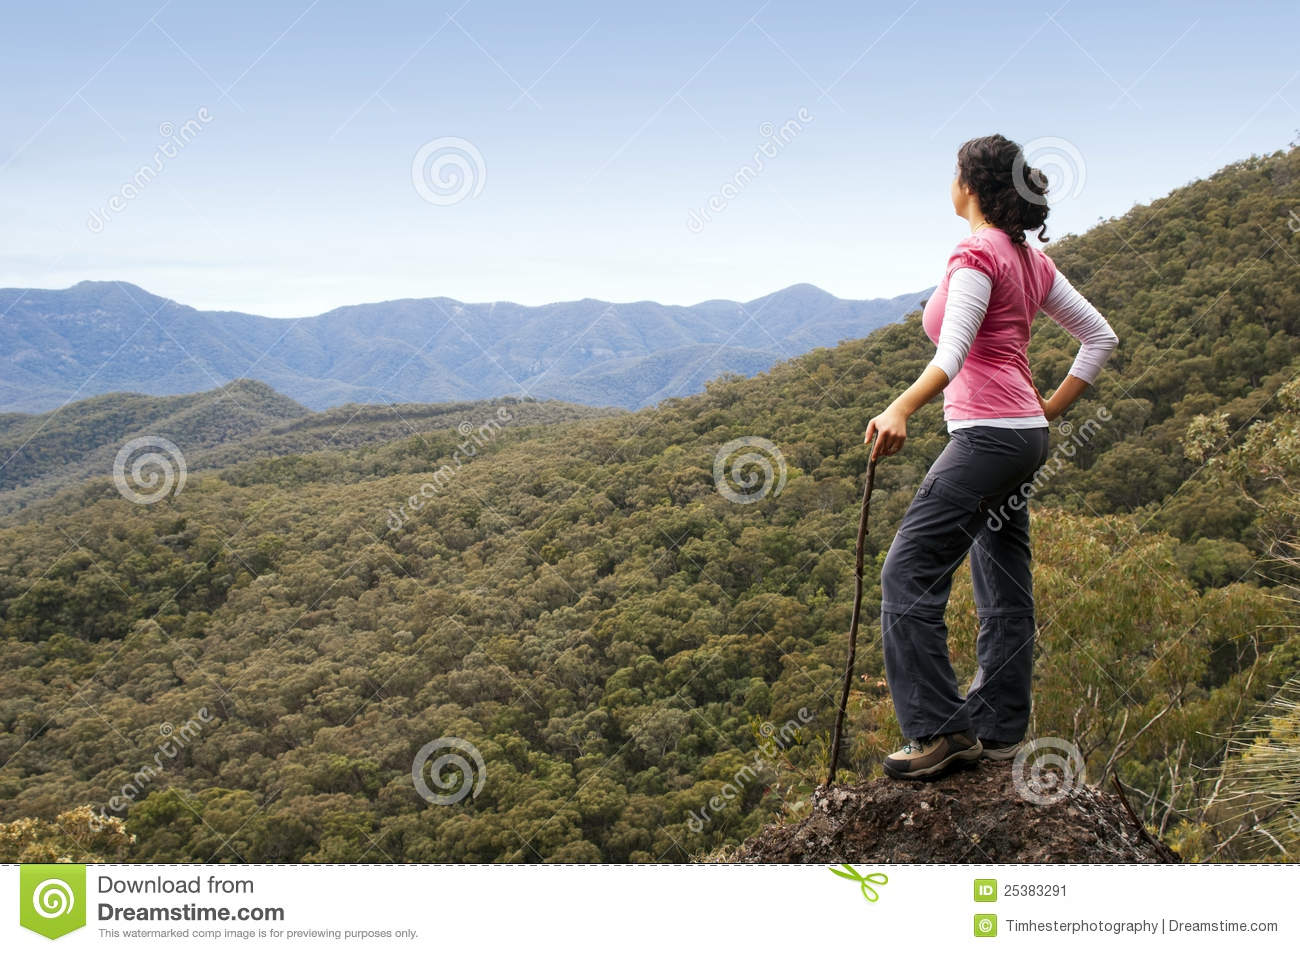 Single female hiker looks out at view in mountains with forest below